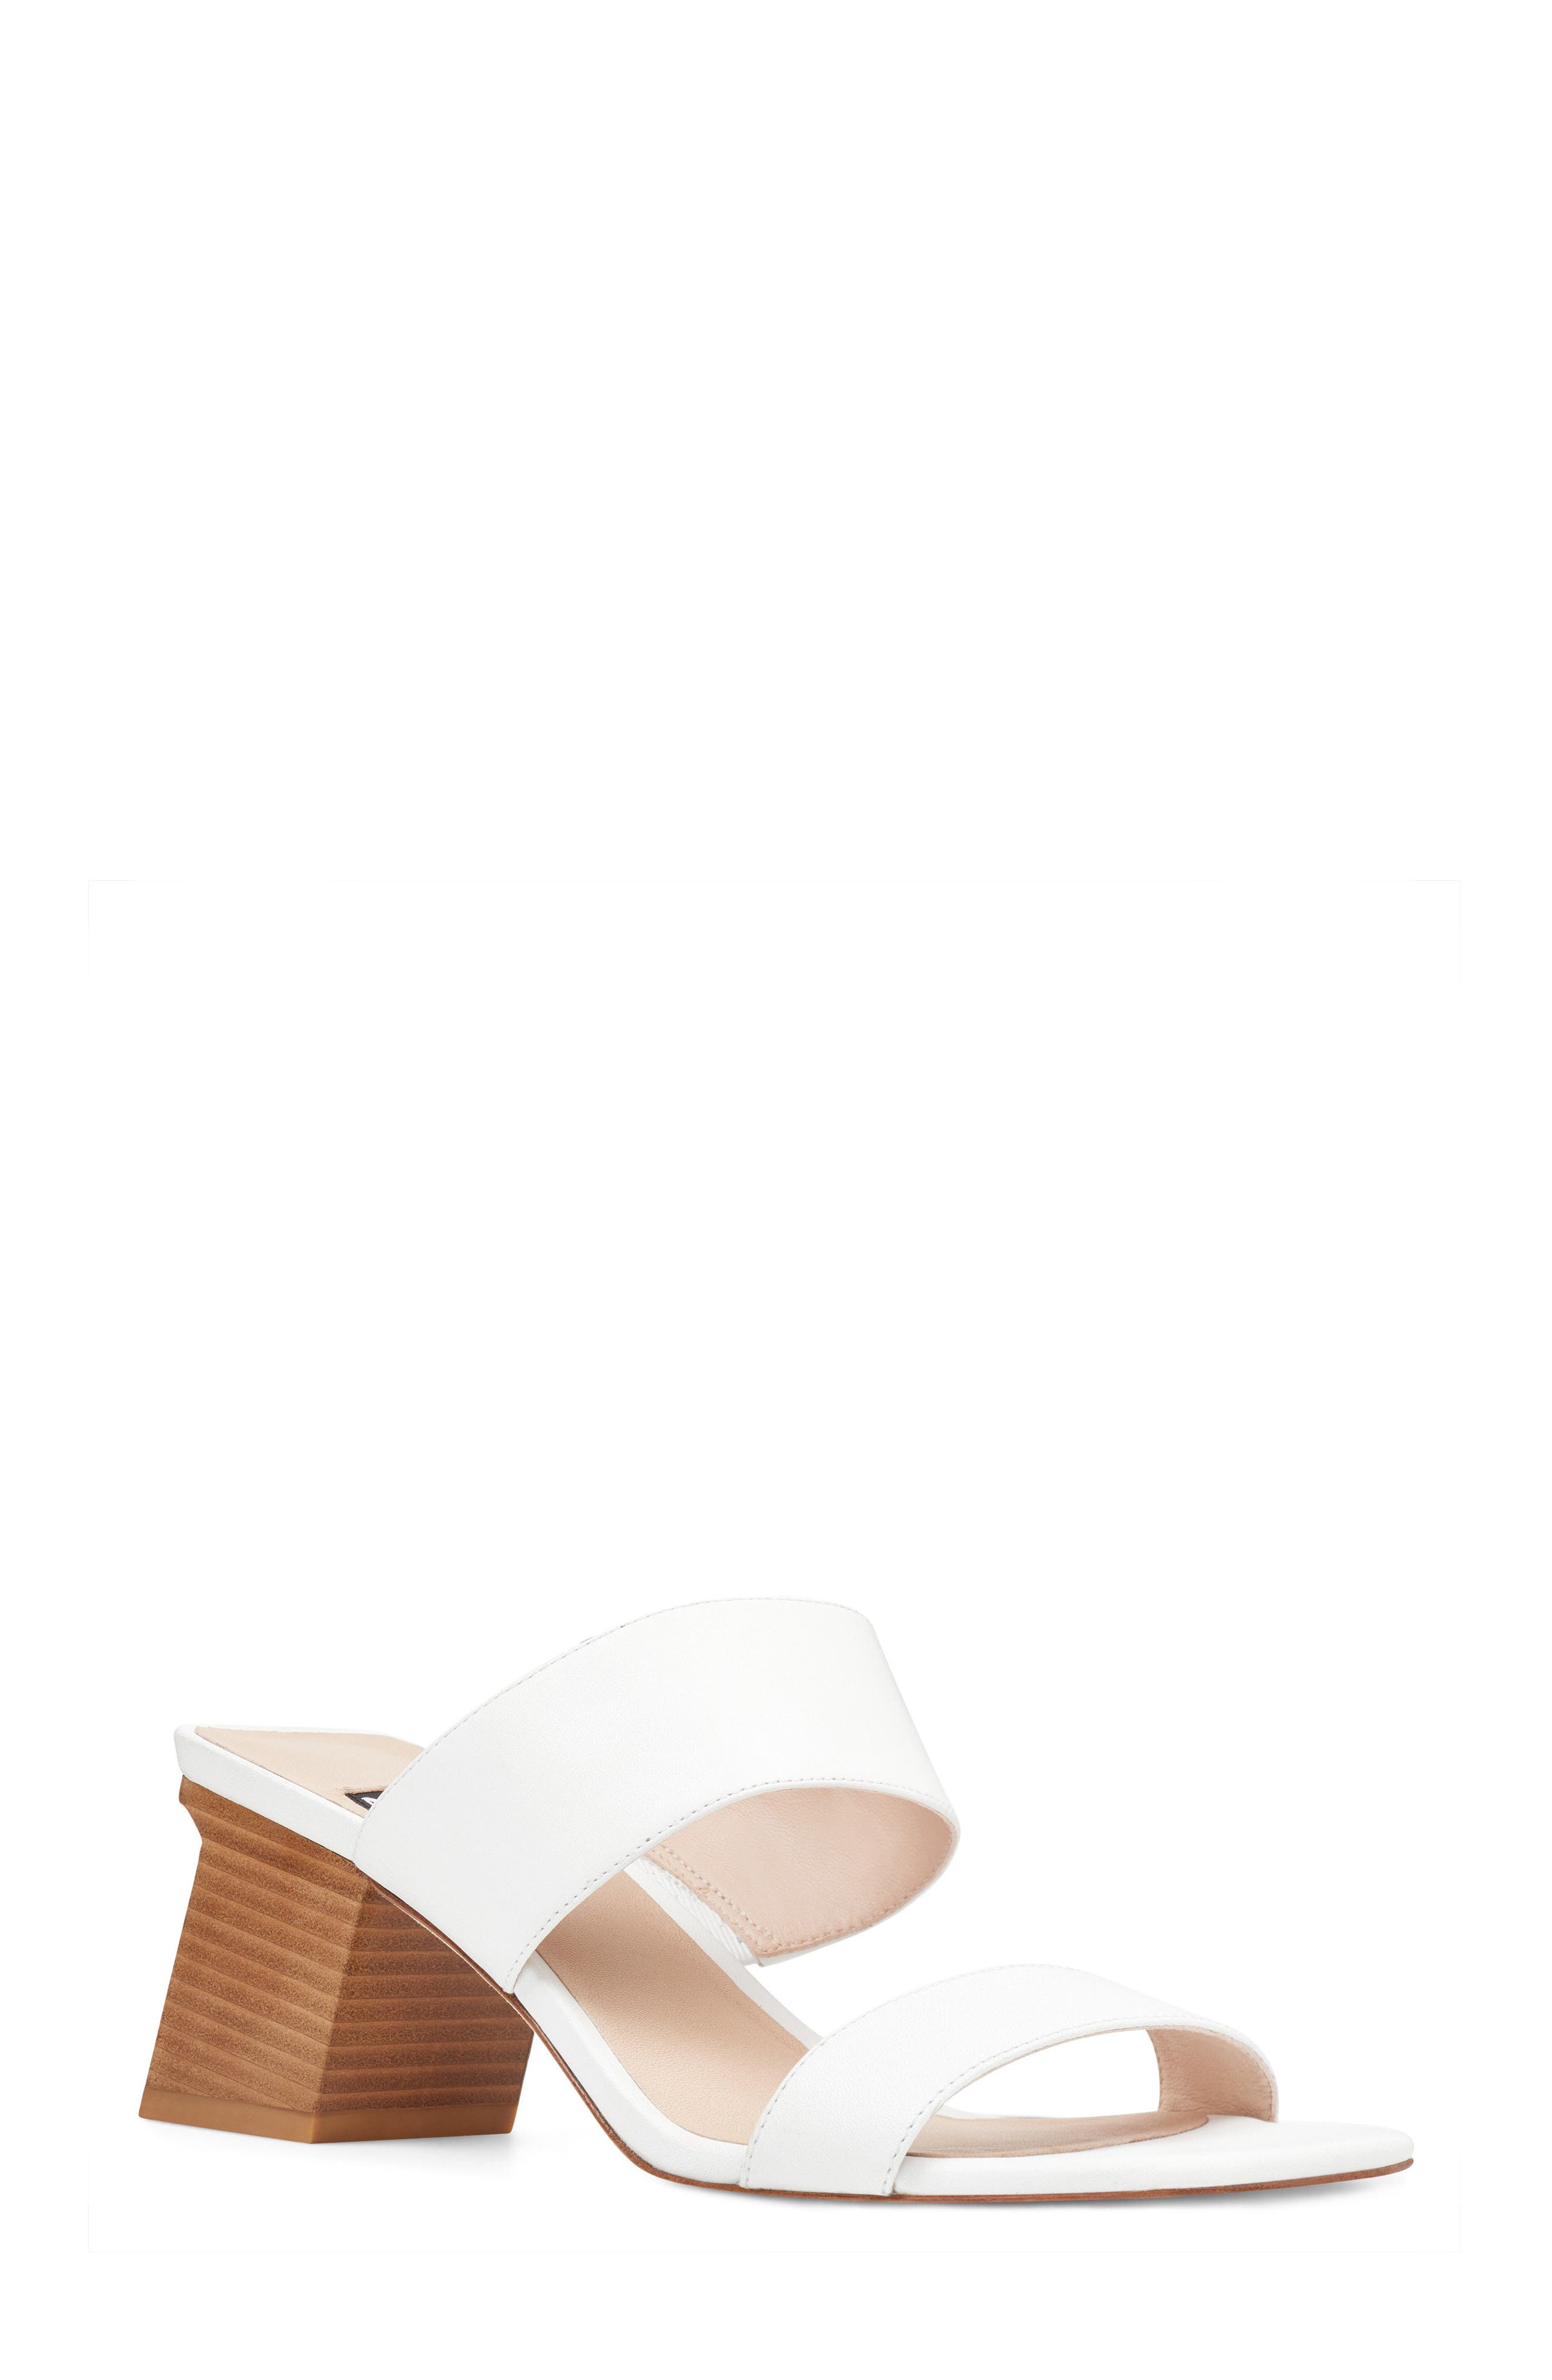 Churen - 40th Anniversary Capsule Collection Sandal,                         Main,                         color, White Leather